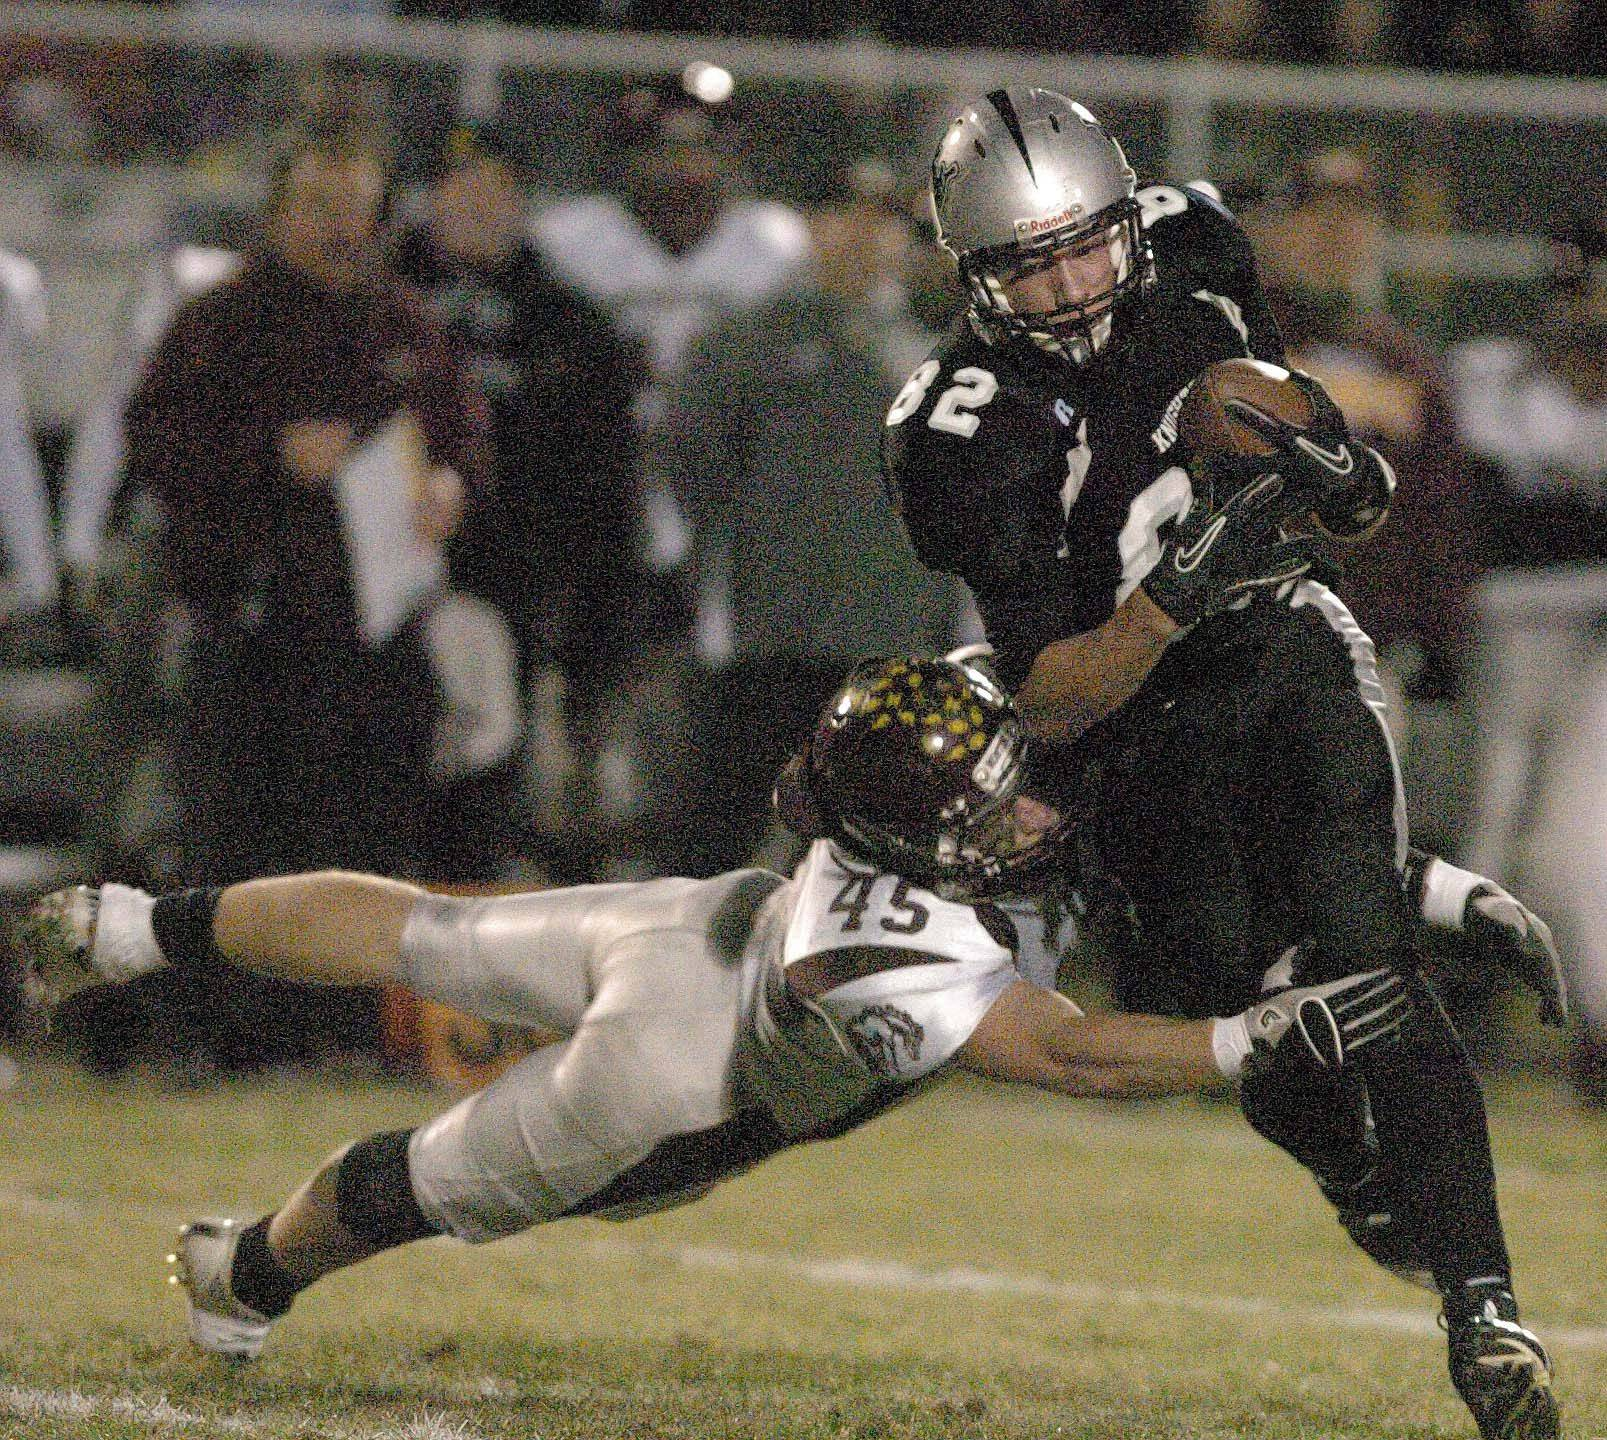 Alex Walters of Montini pulls down Daniel Helm of Kaneland during game action Saturday.